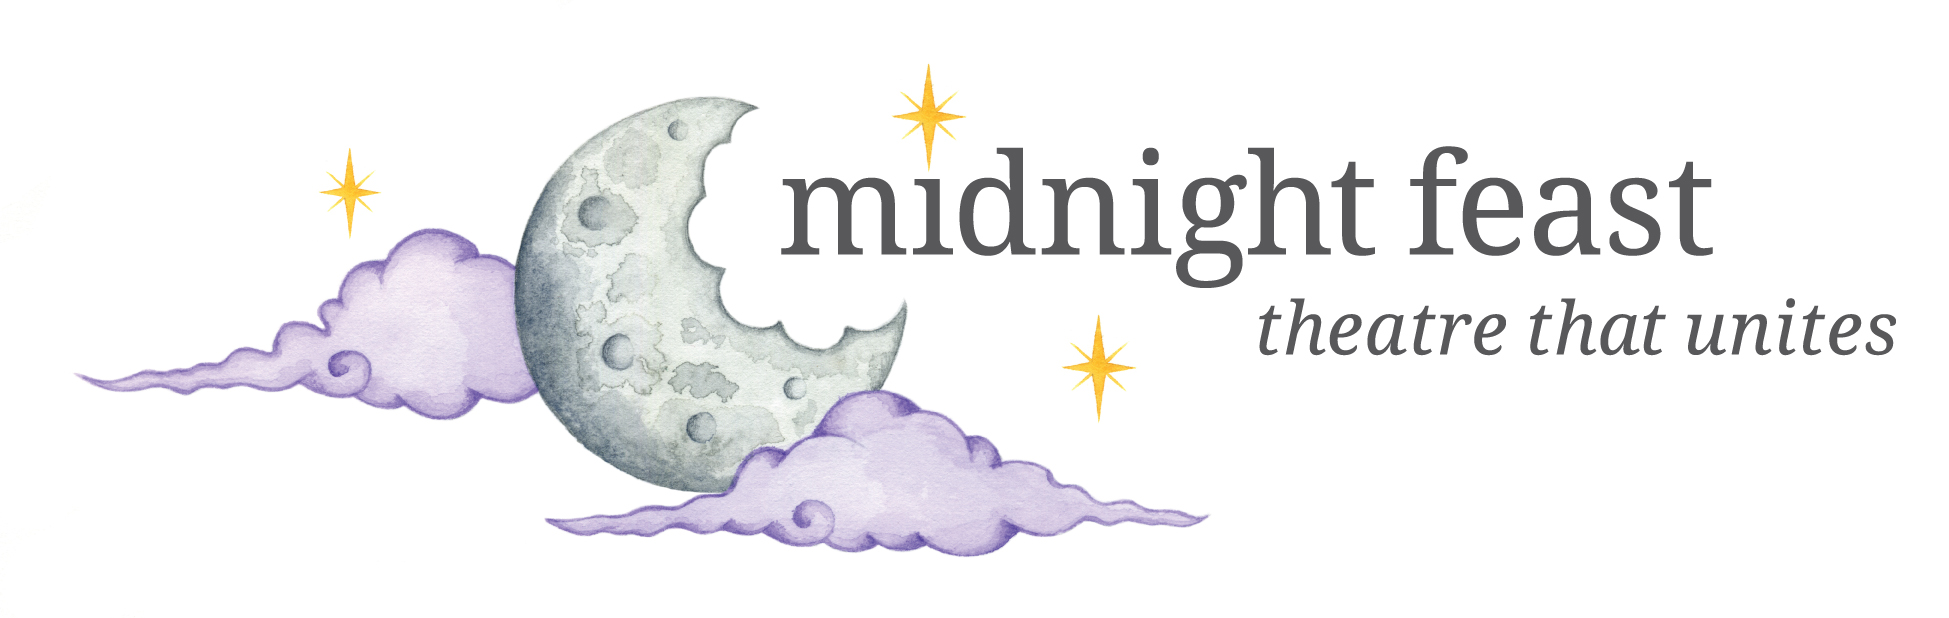 Midnight Feast is an independent theatre company that enables actors, writers, production staff and performers experiencing significant physical, intellectual and emotional challenges to participate in the performing arts. -